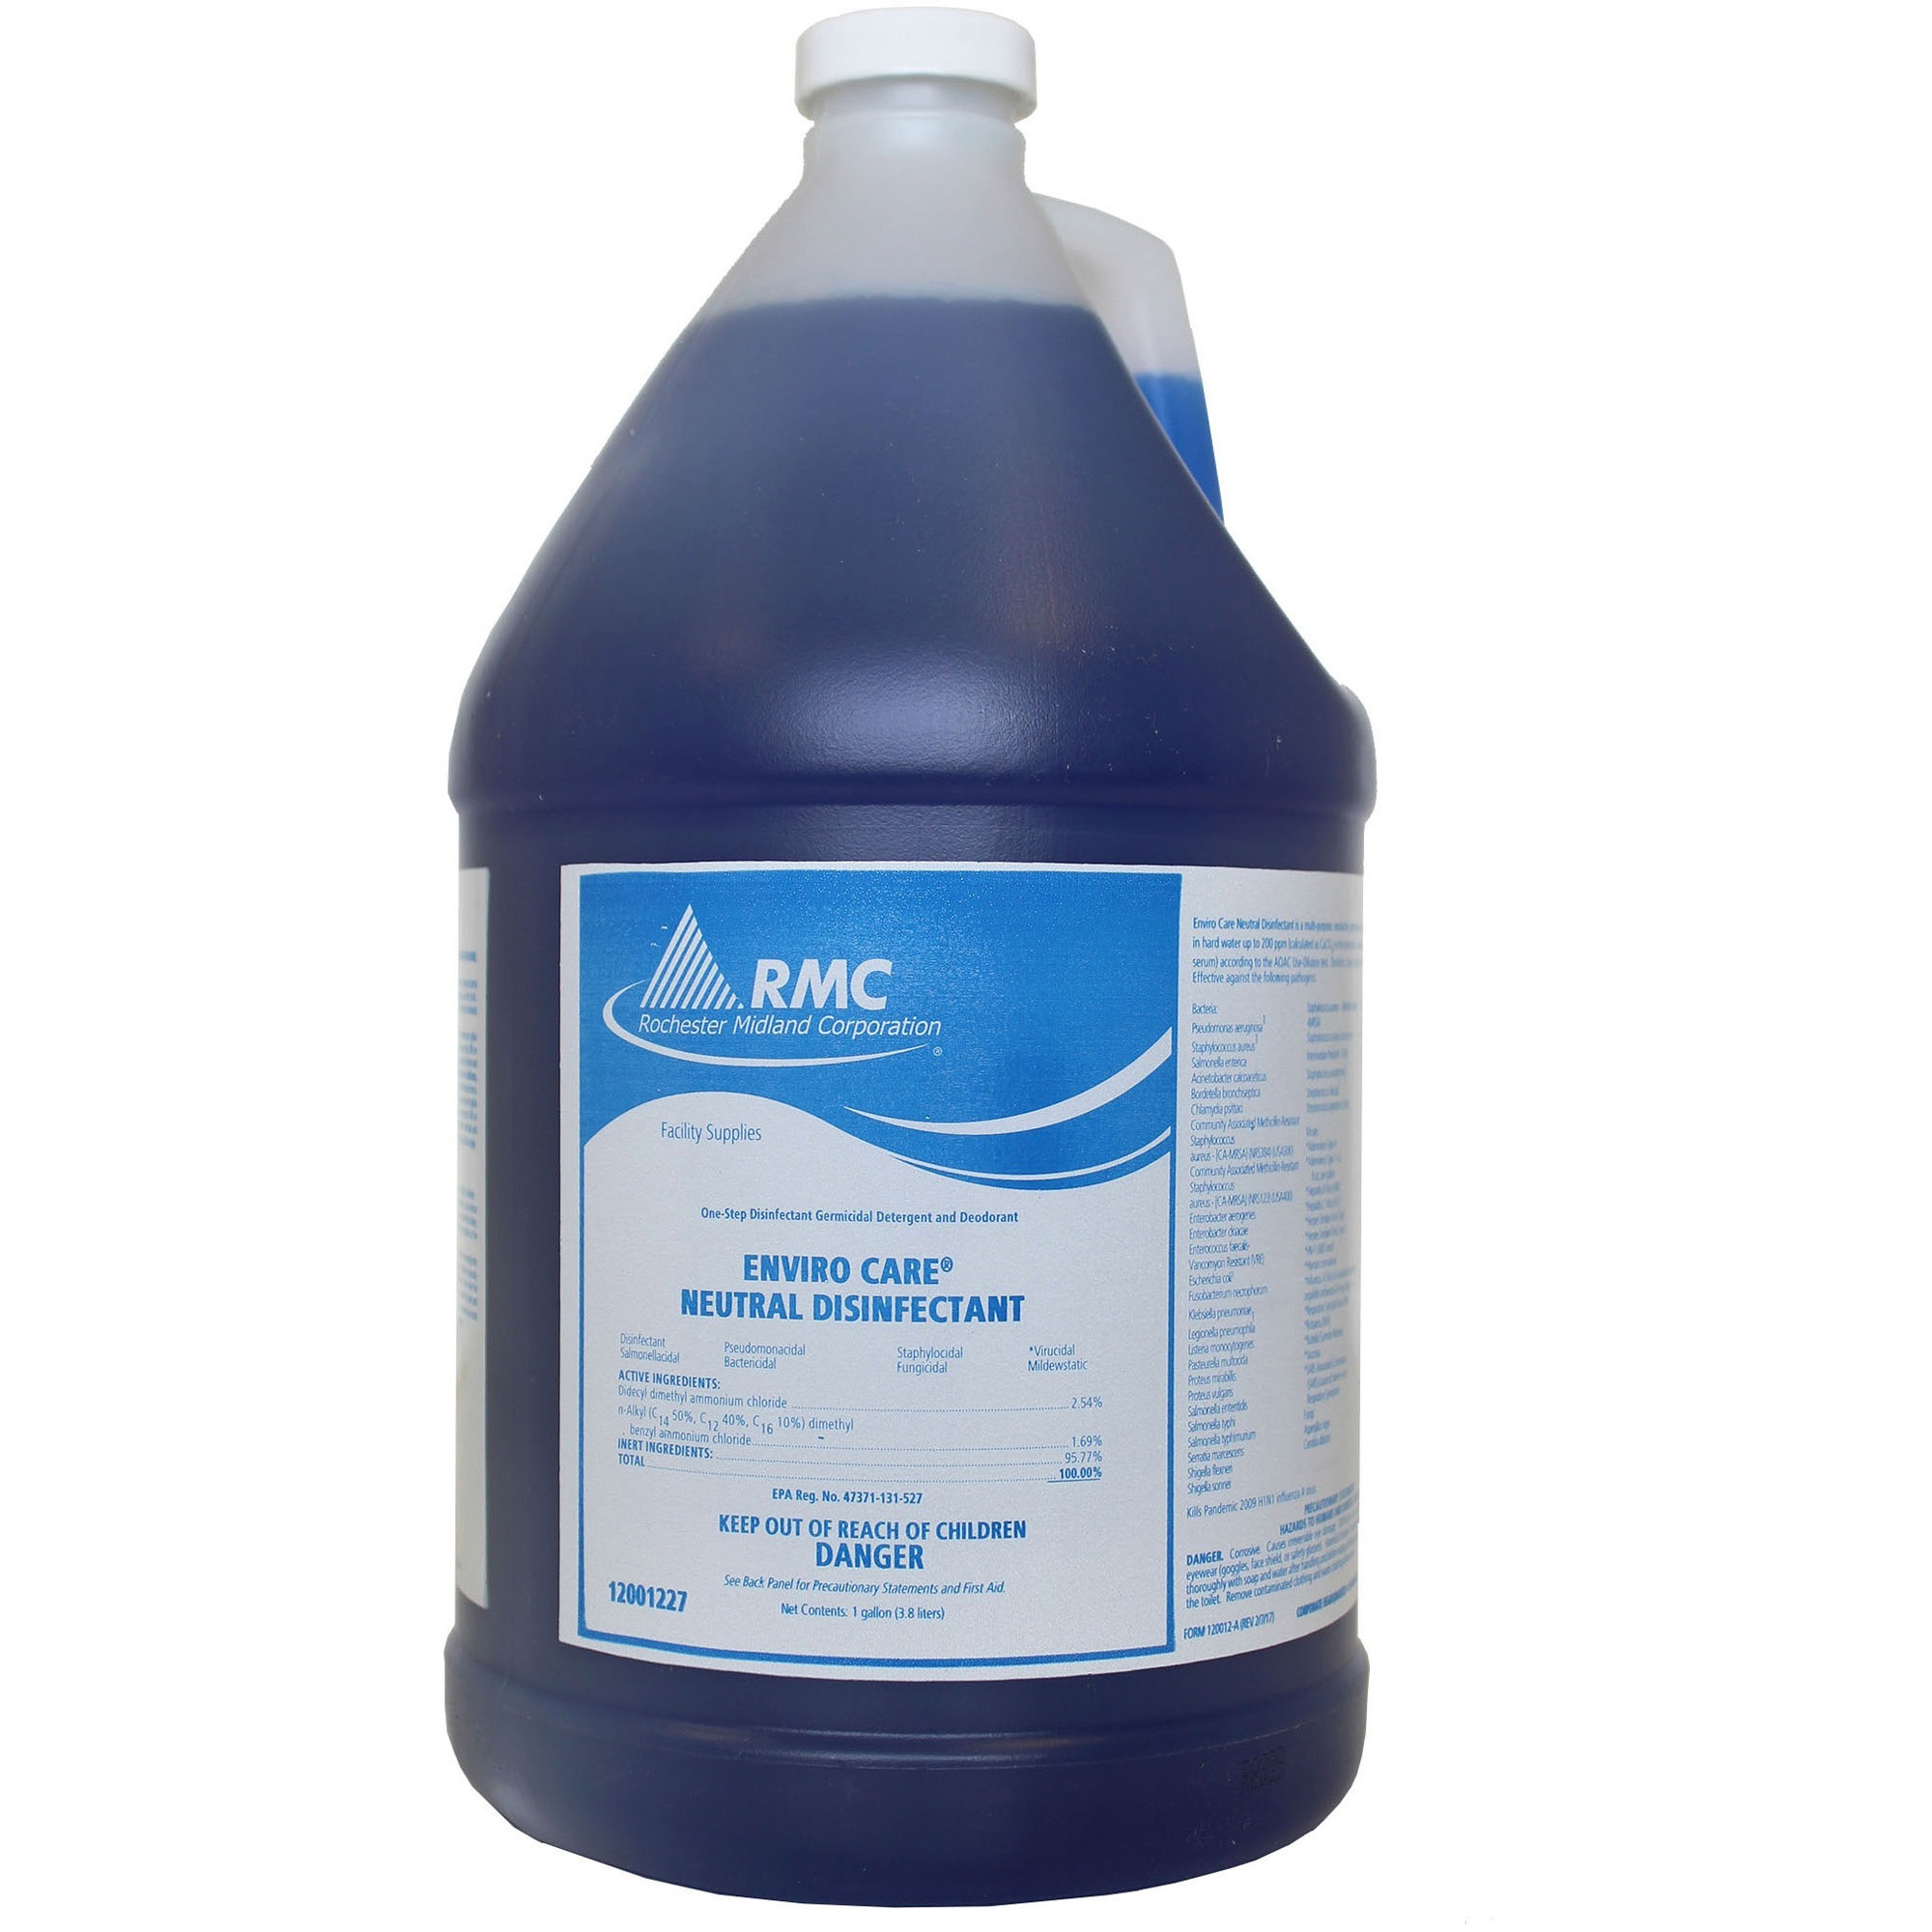 RMC Enviro Care Neutral Disinfectant - Concentrate Spray - 1